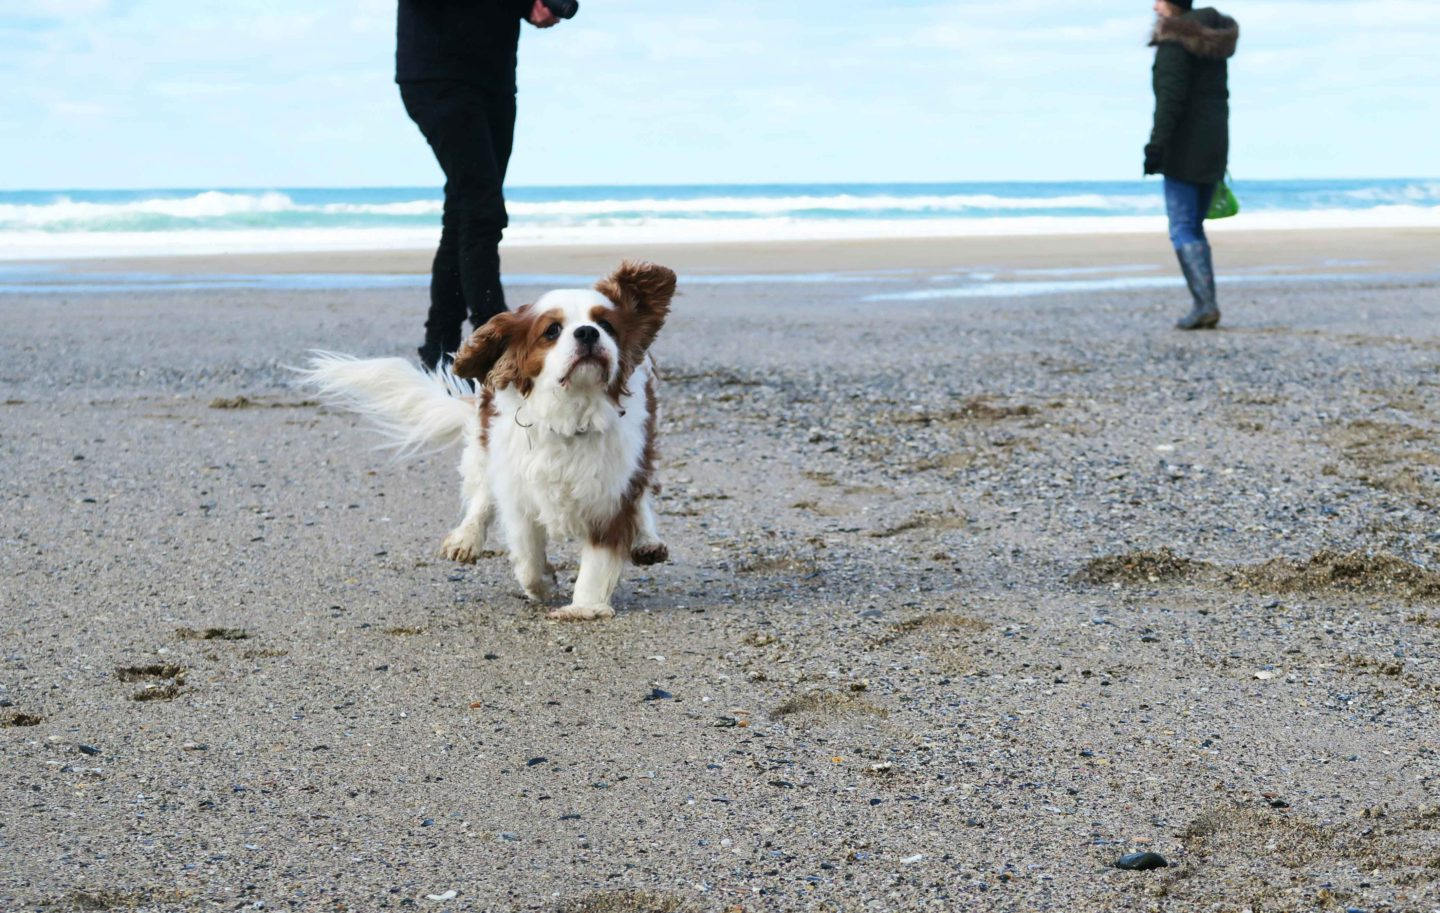 holywell bay dog running on beach with people